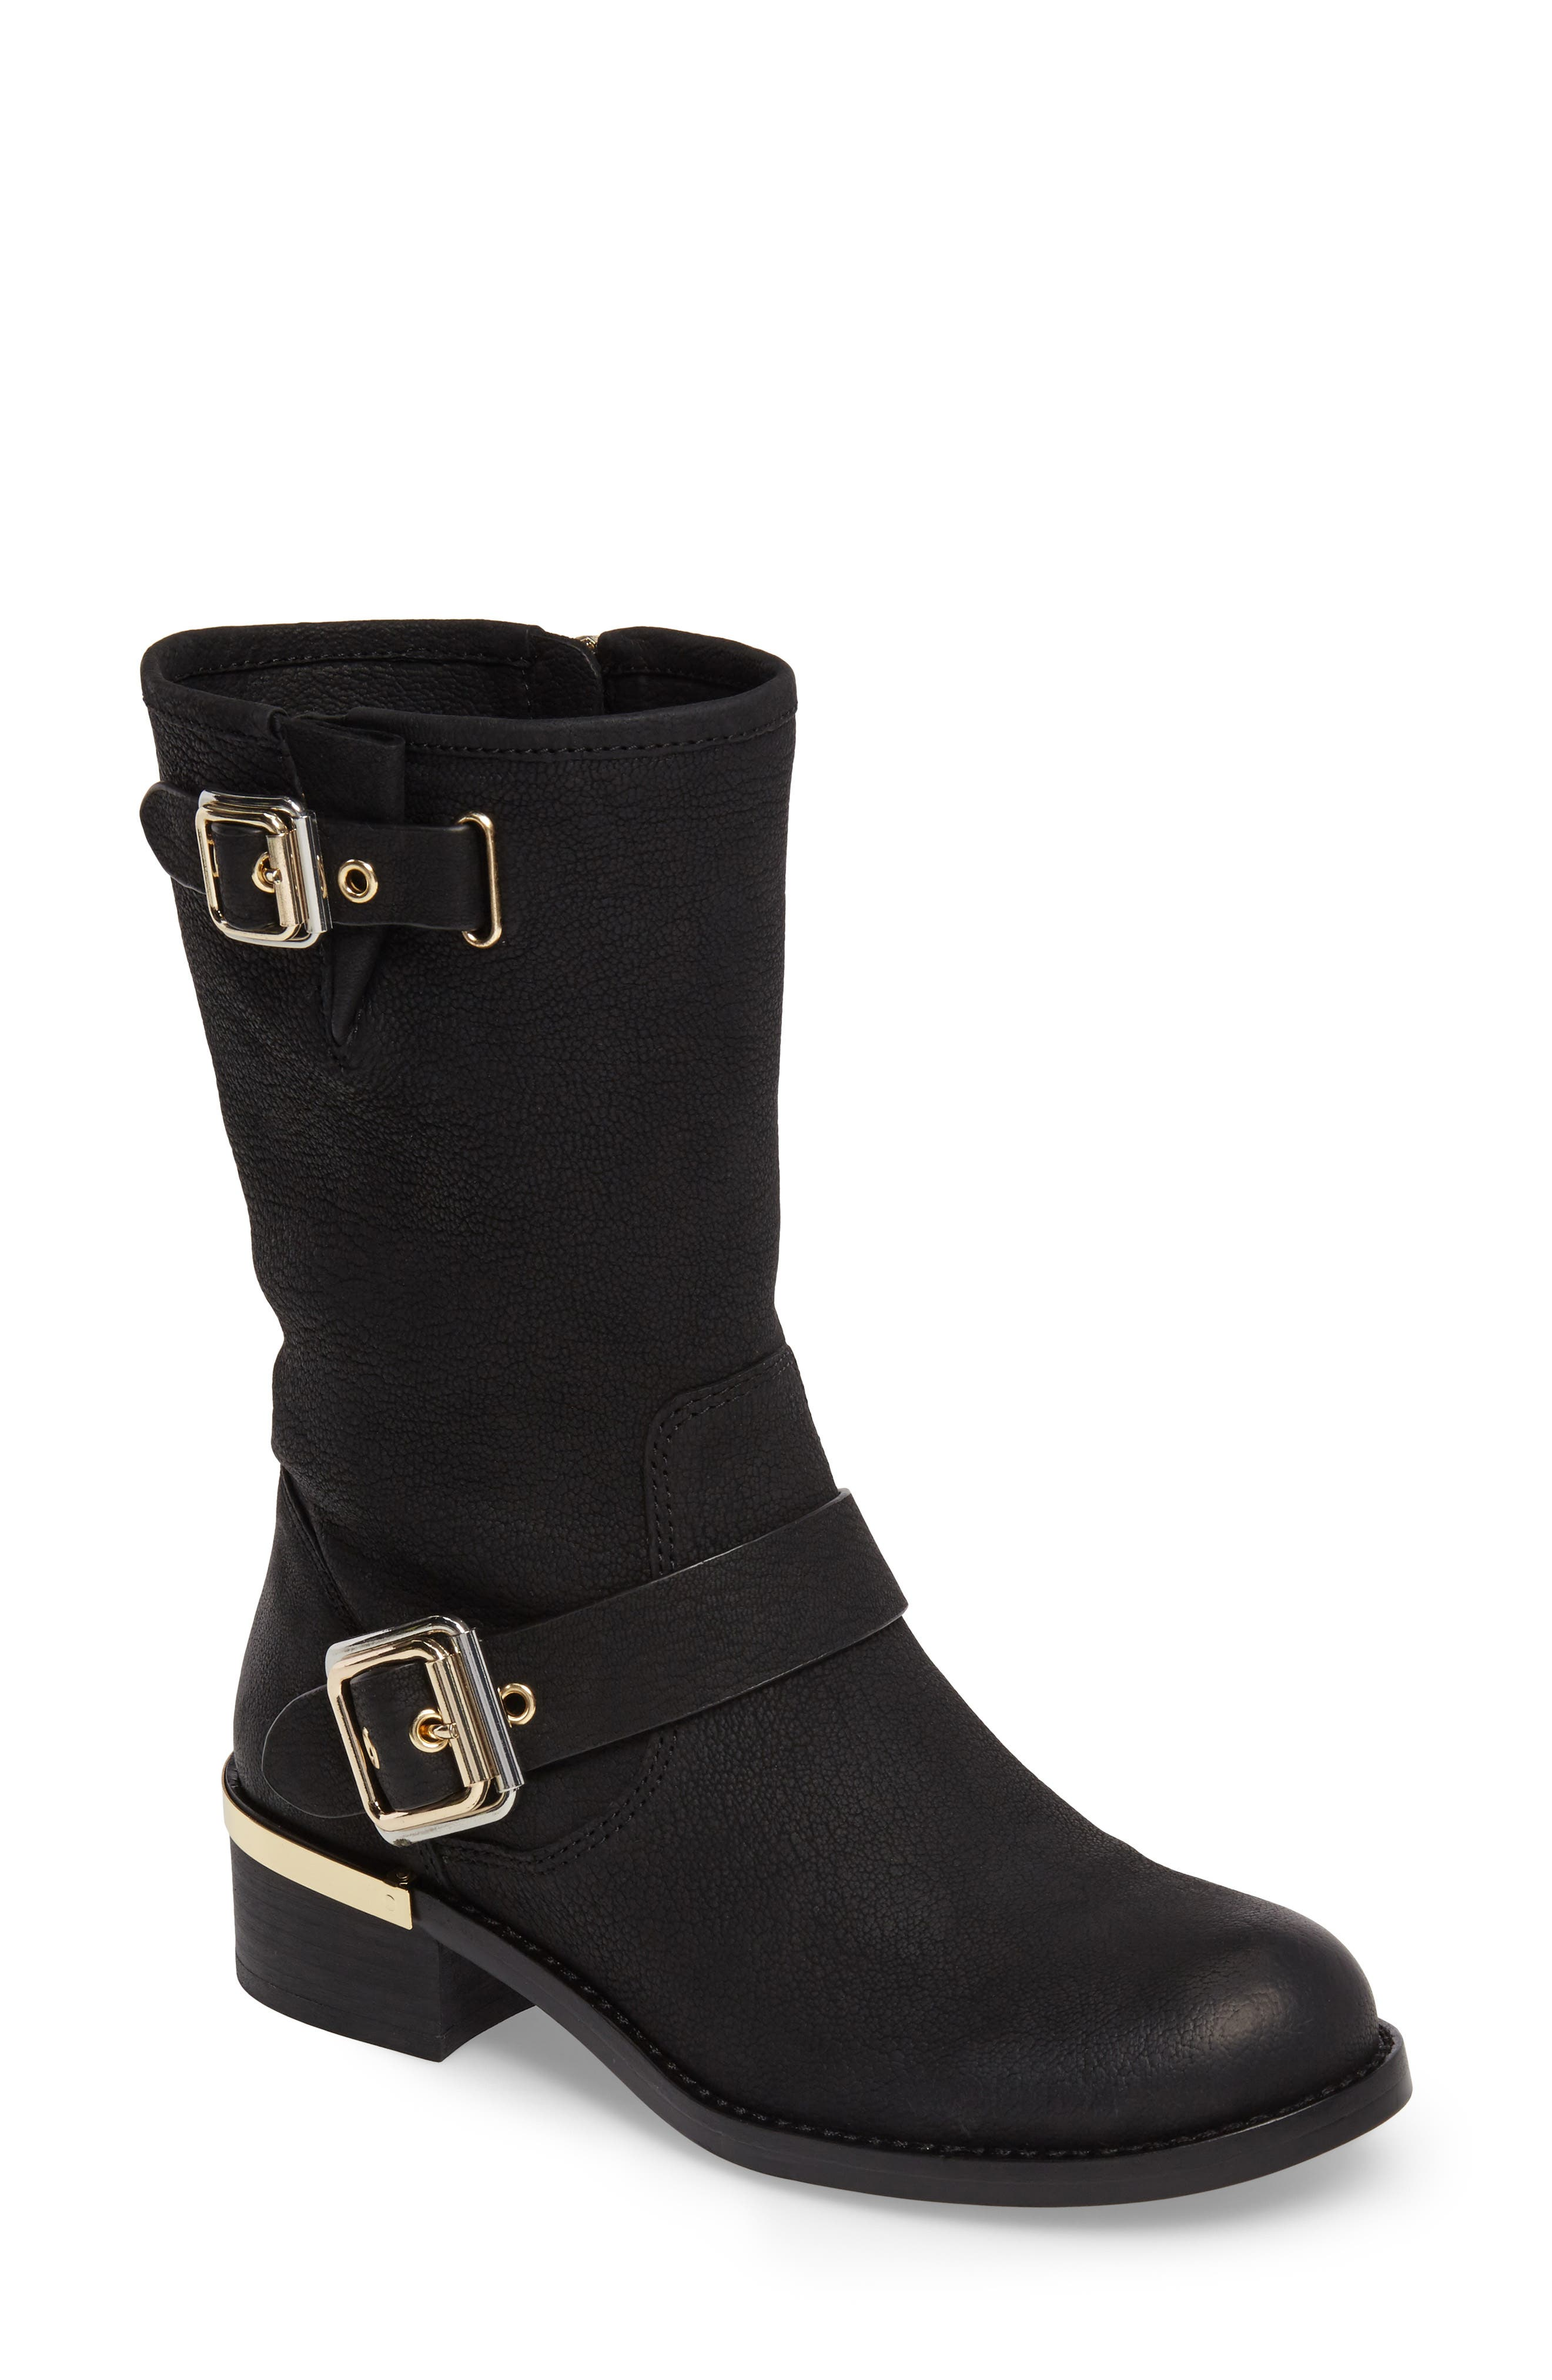 Alternate Image 1 Selected - Vince Camuto Windy Boot (Women)